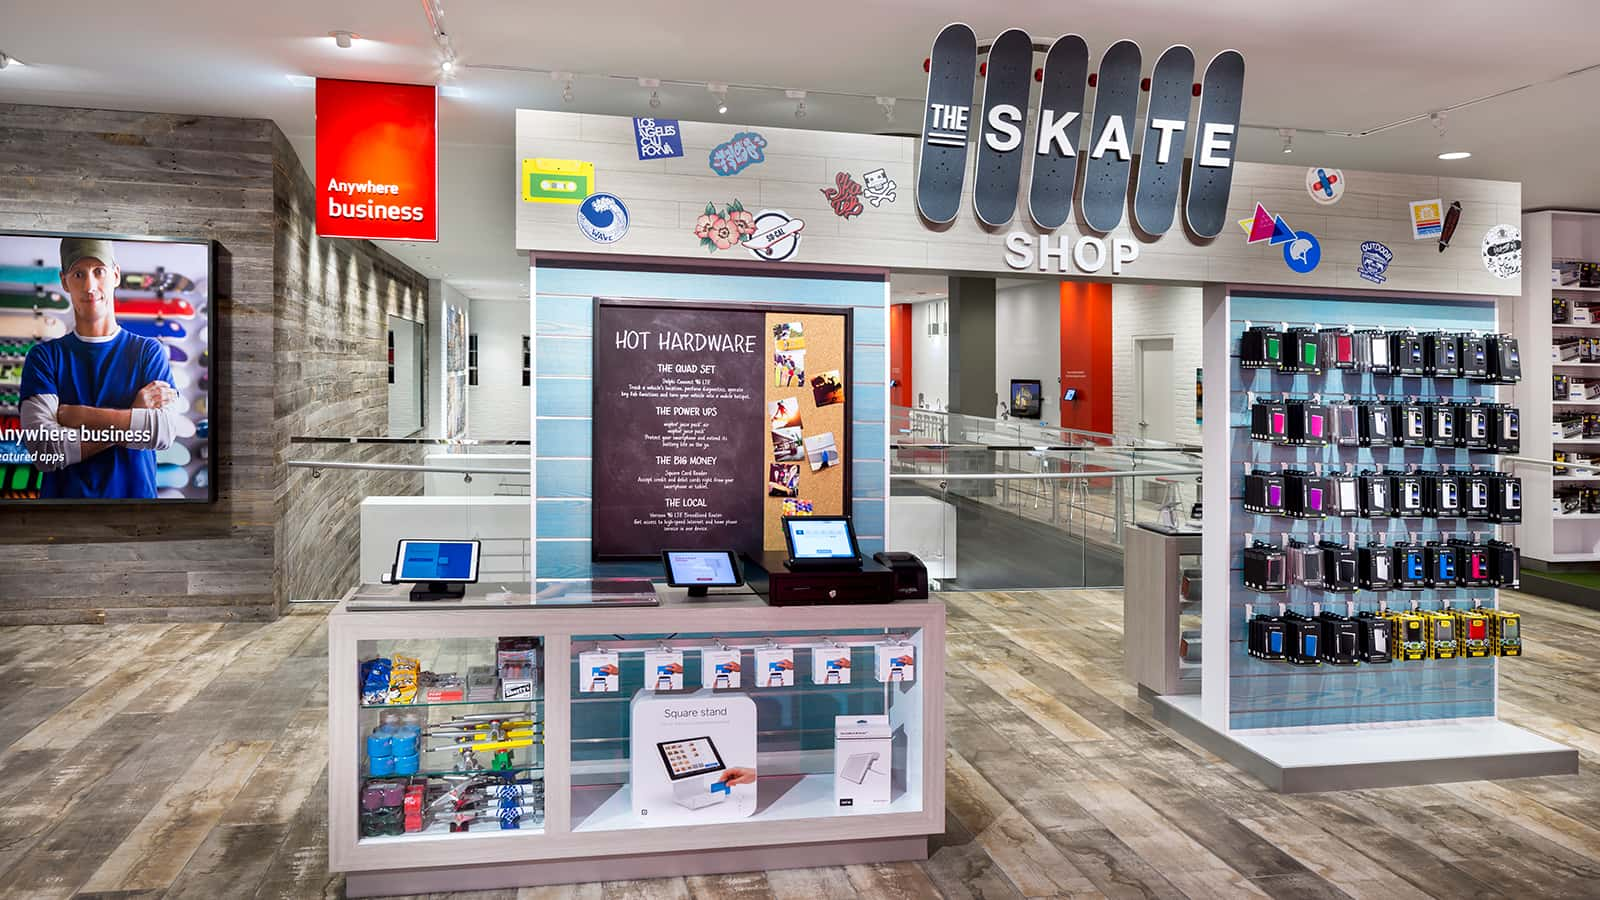 Verizon Destination Store Santa Monica 2016 The Skate Shop Anywhere Business zone